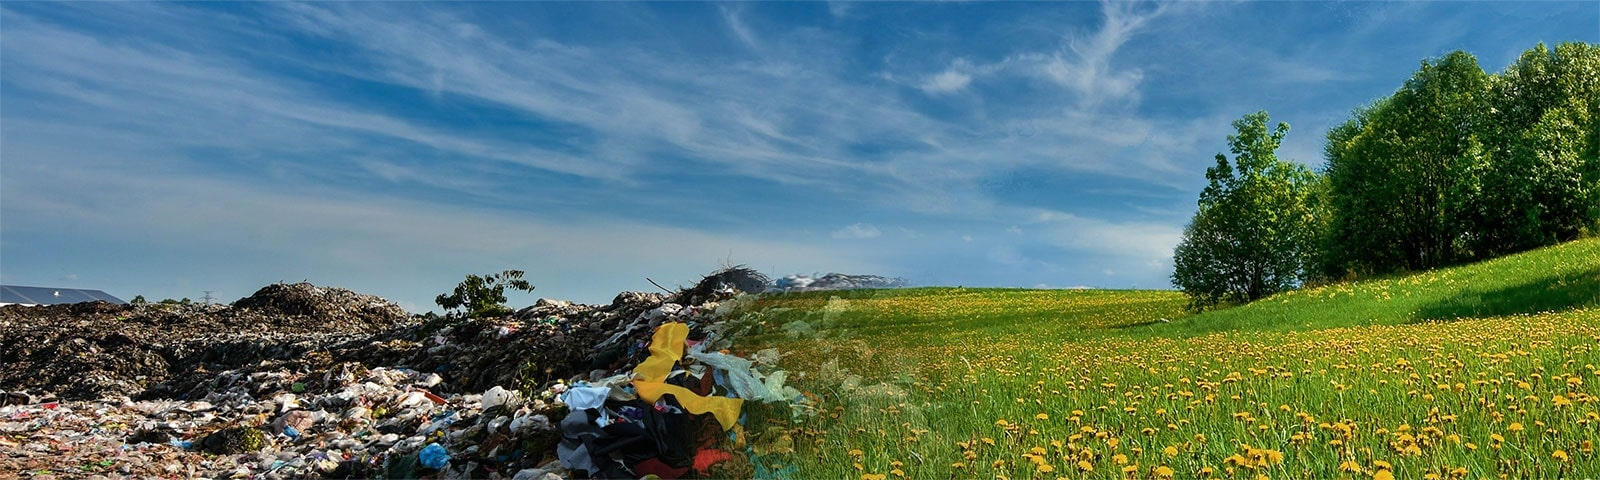 Image of two contrasting scenes : textile landfill and field with full of flowers.